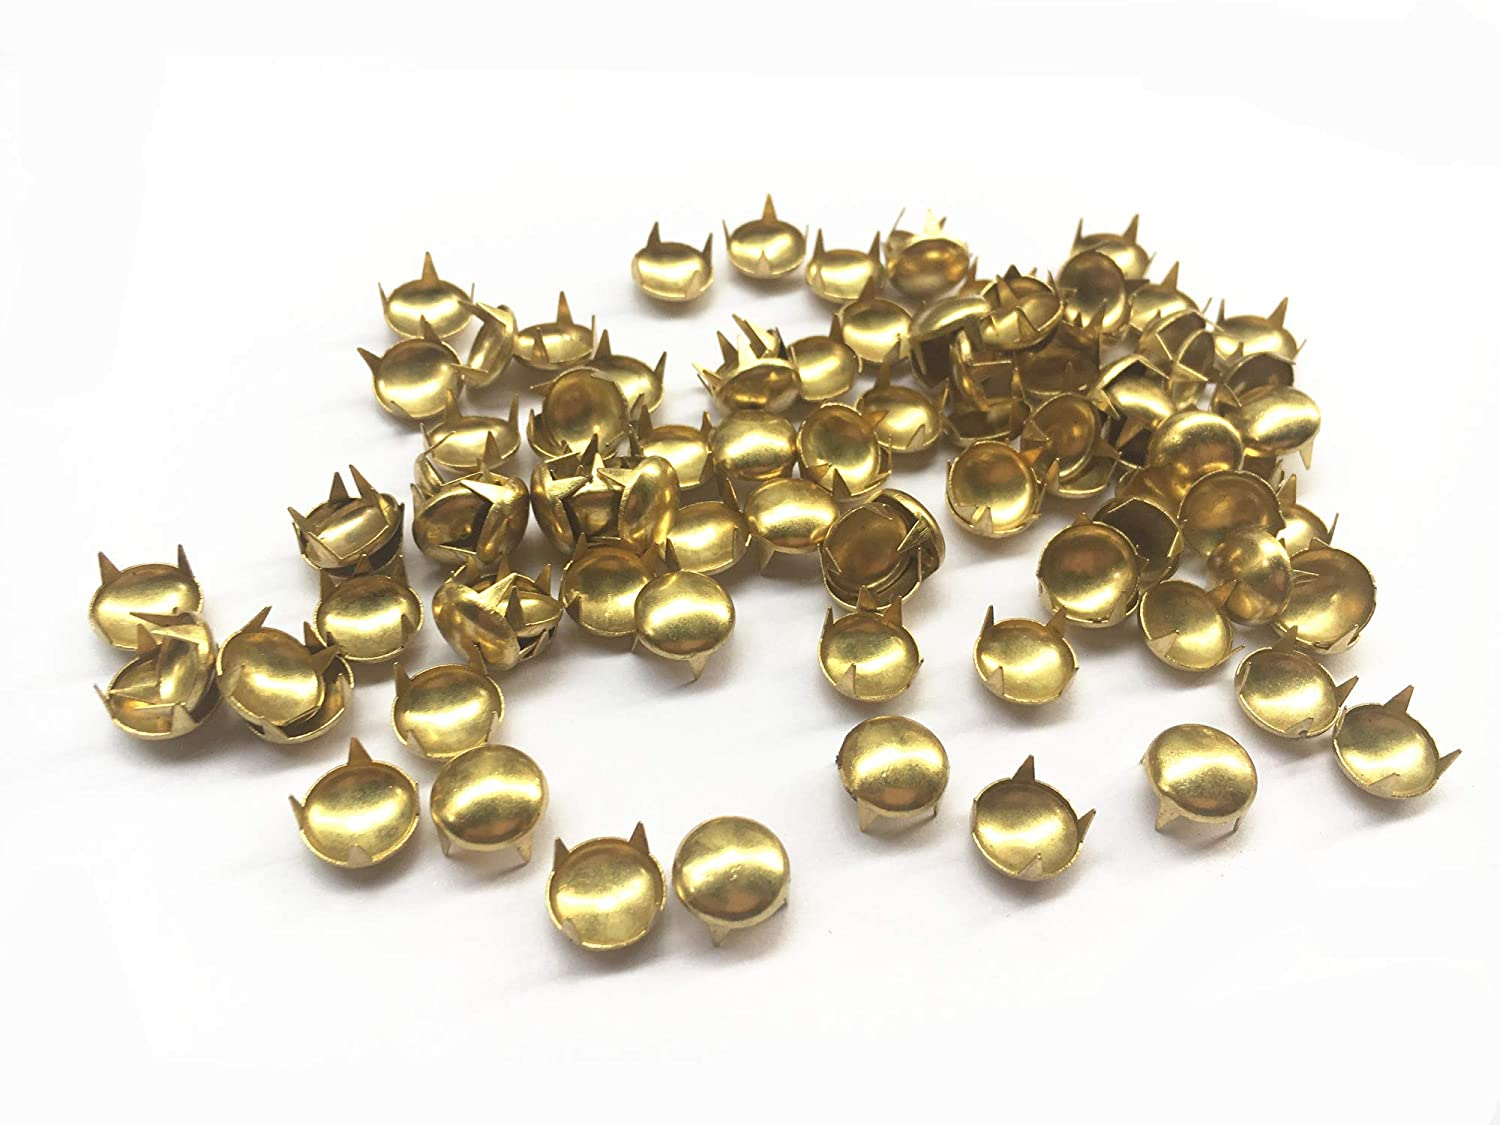 Gold, 9 Mm 100 Pcs Round Dome Studs Metal Claw Beads Nailhead Punk Rivets with Spikes